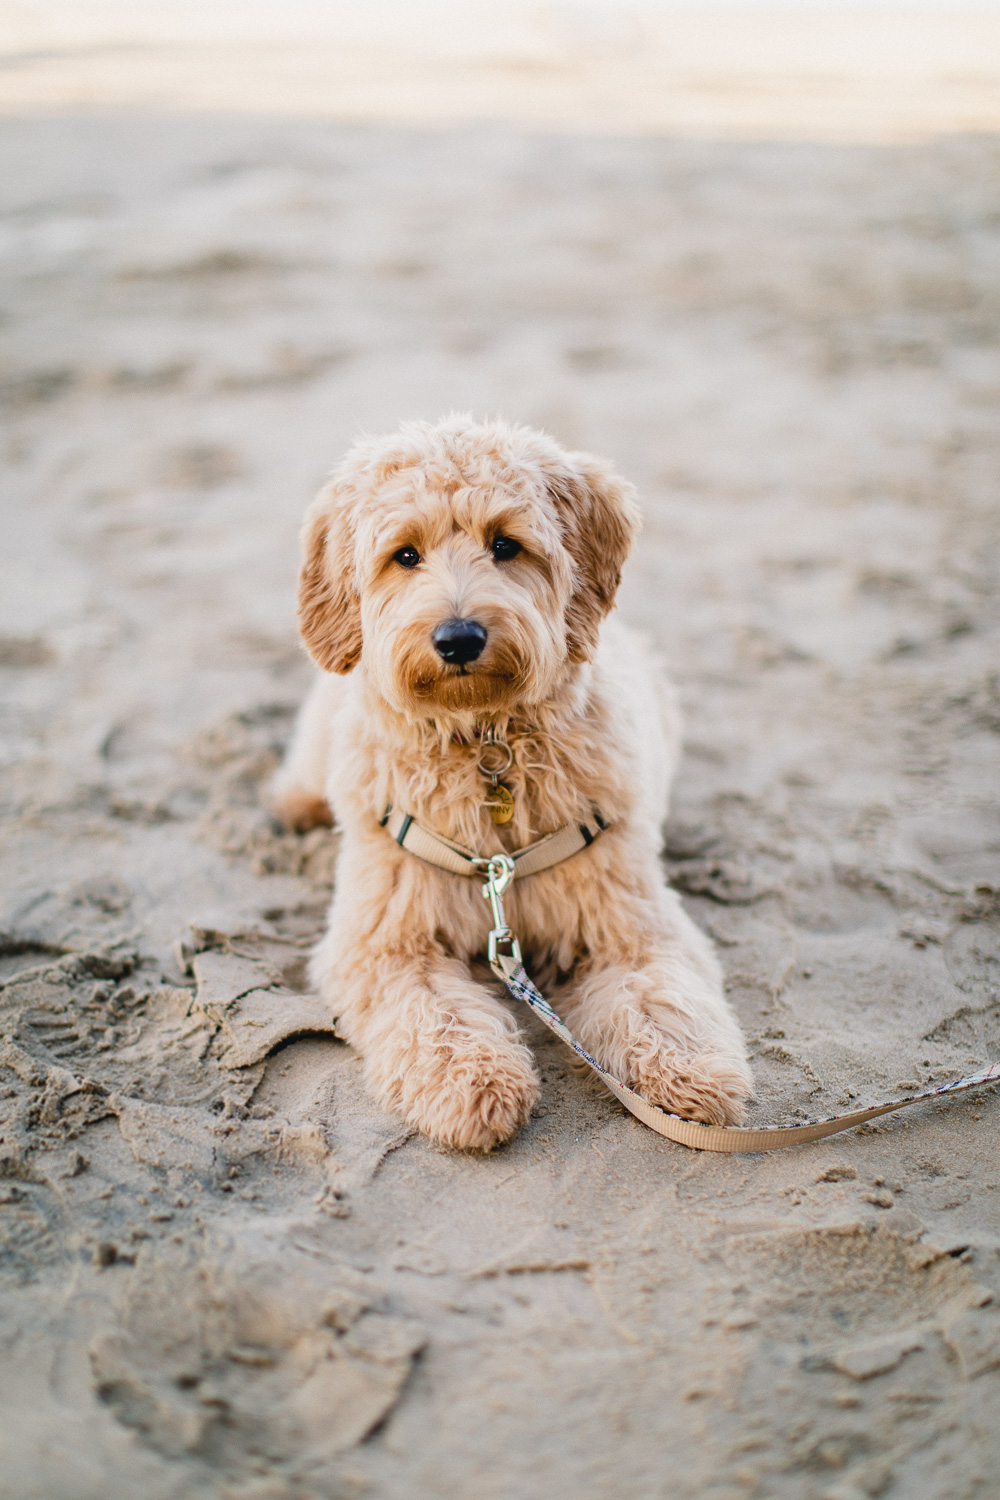 Pismo-Beach-Couples-Photography-Session-With-Puppy-101.jpg